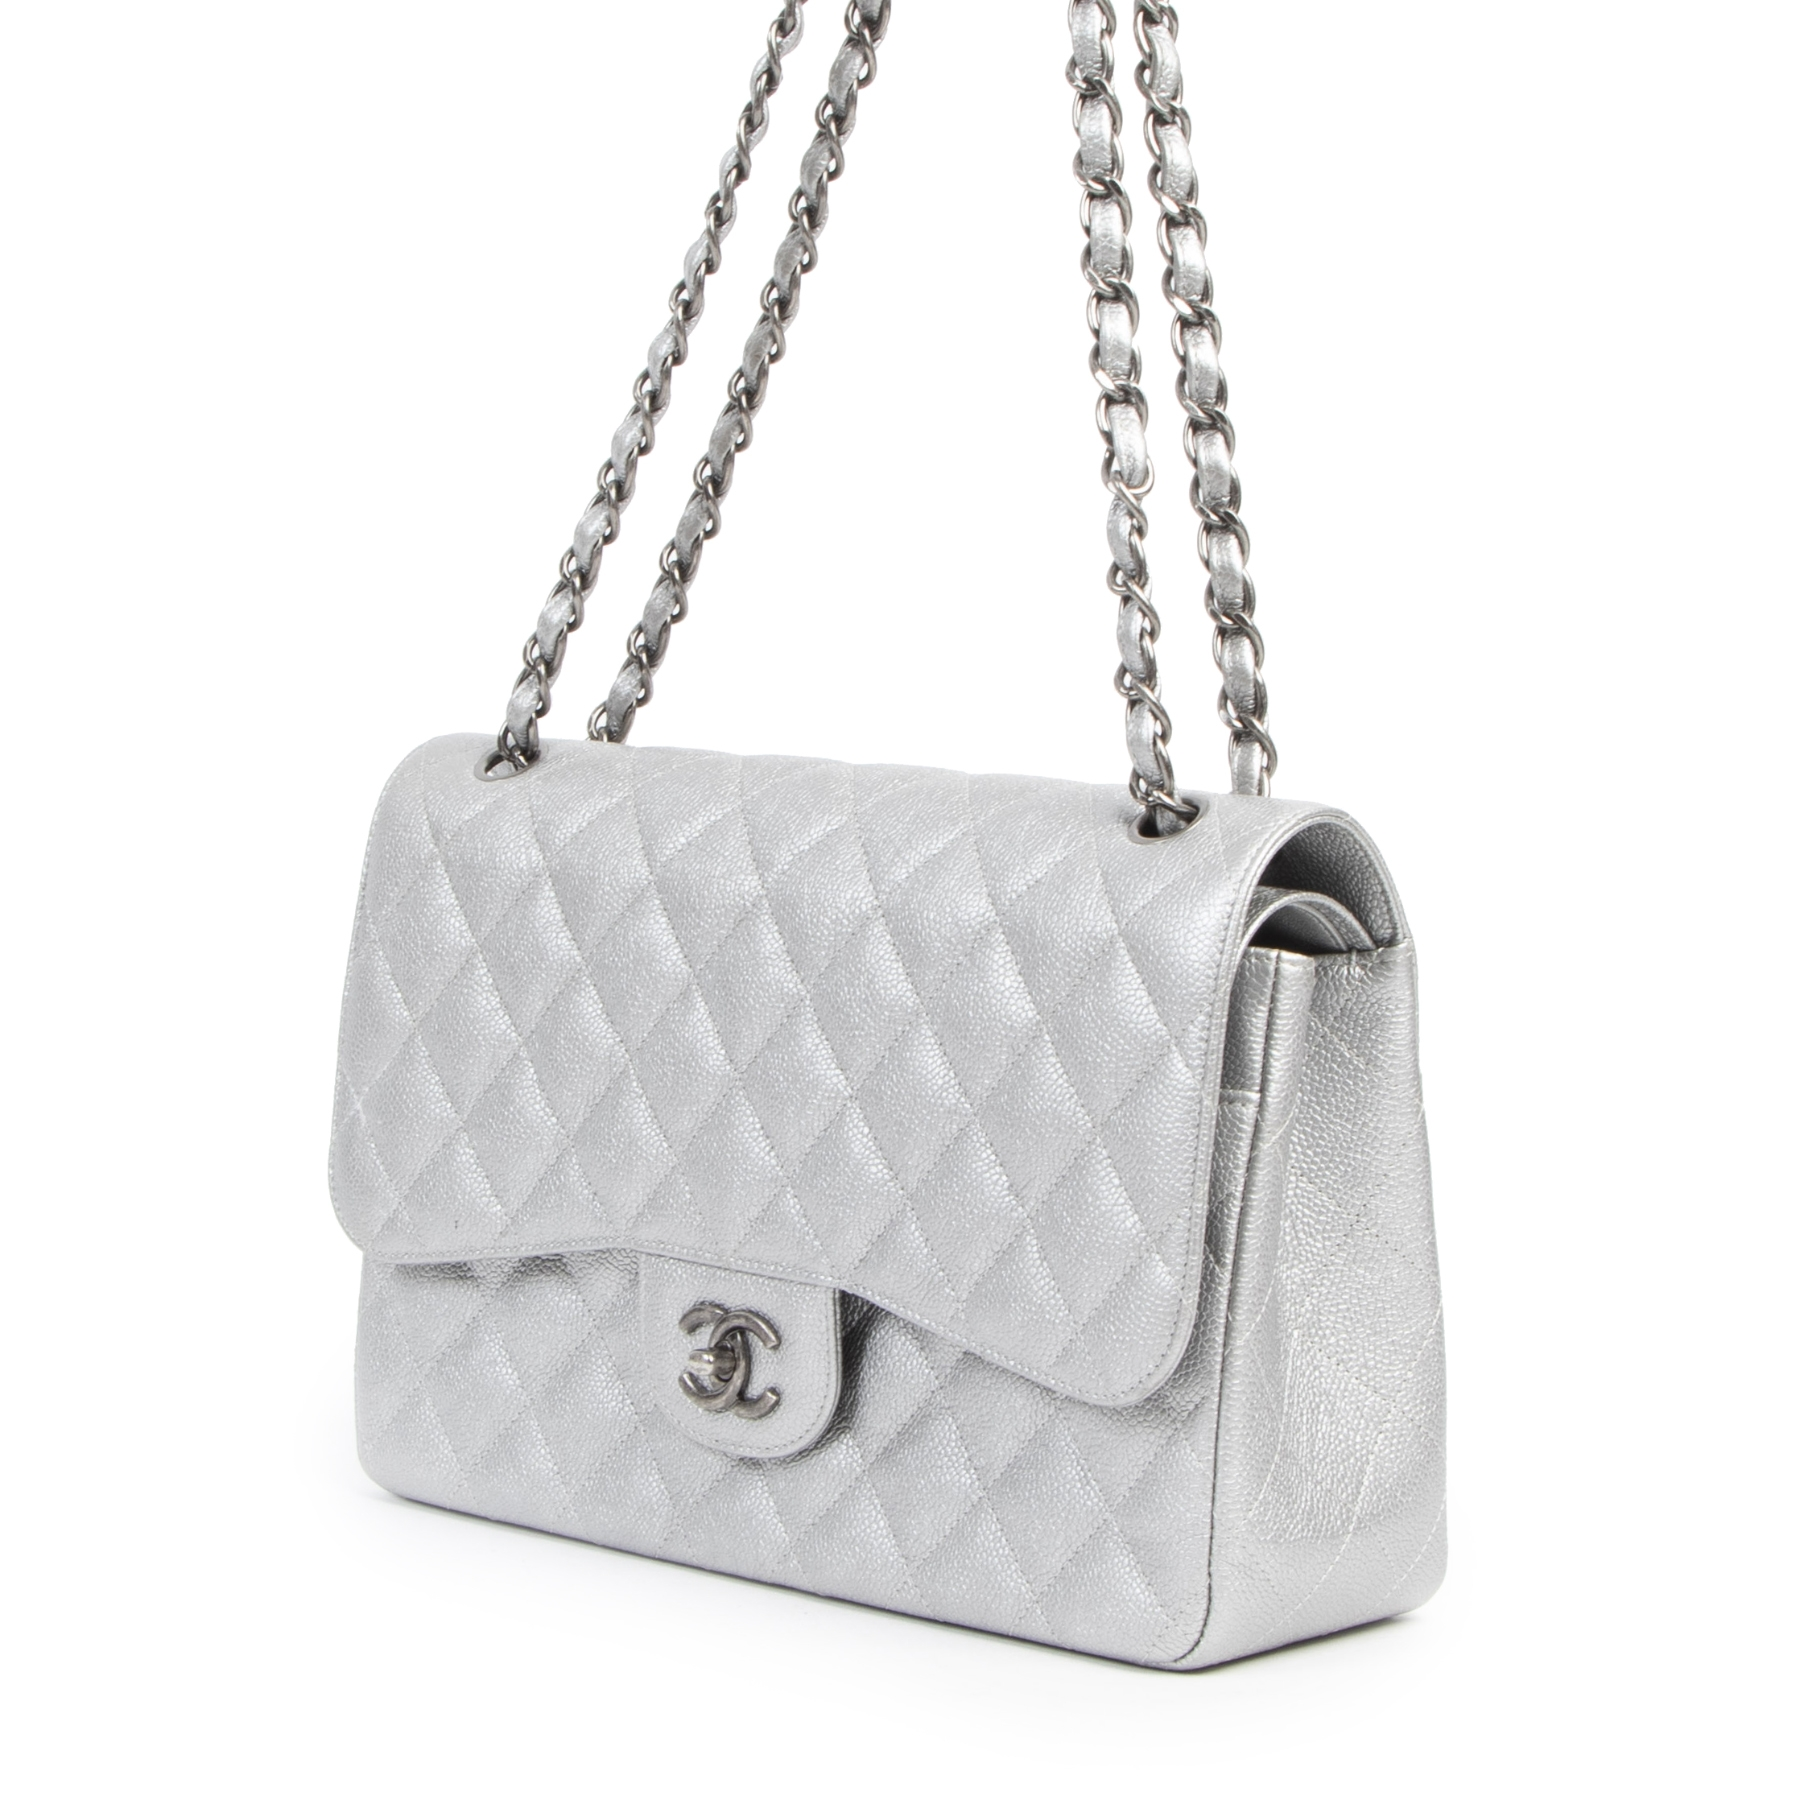 Chanel Silver Jumbo Classic Flap Bag